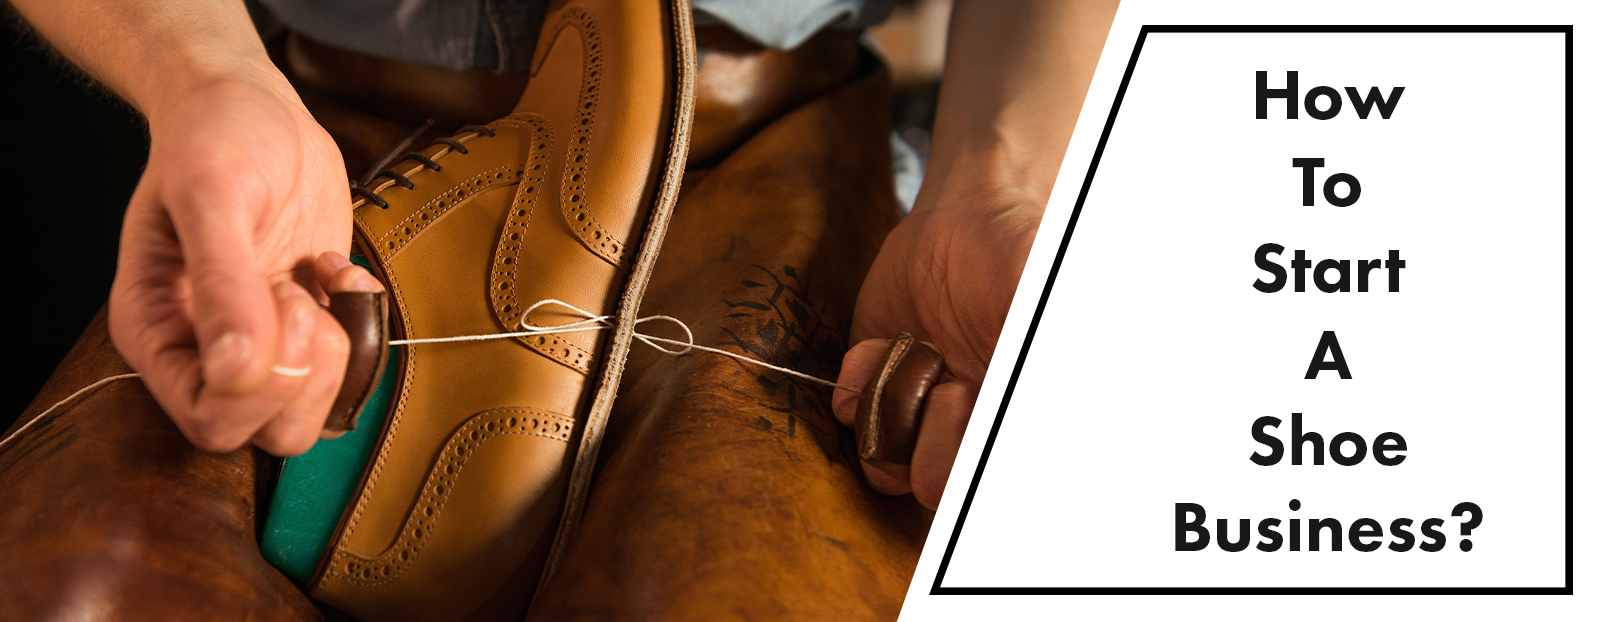 How To Start A Shoe Business?